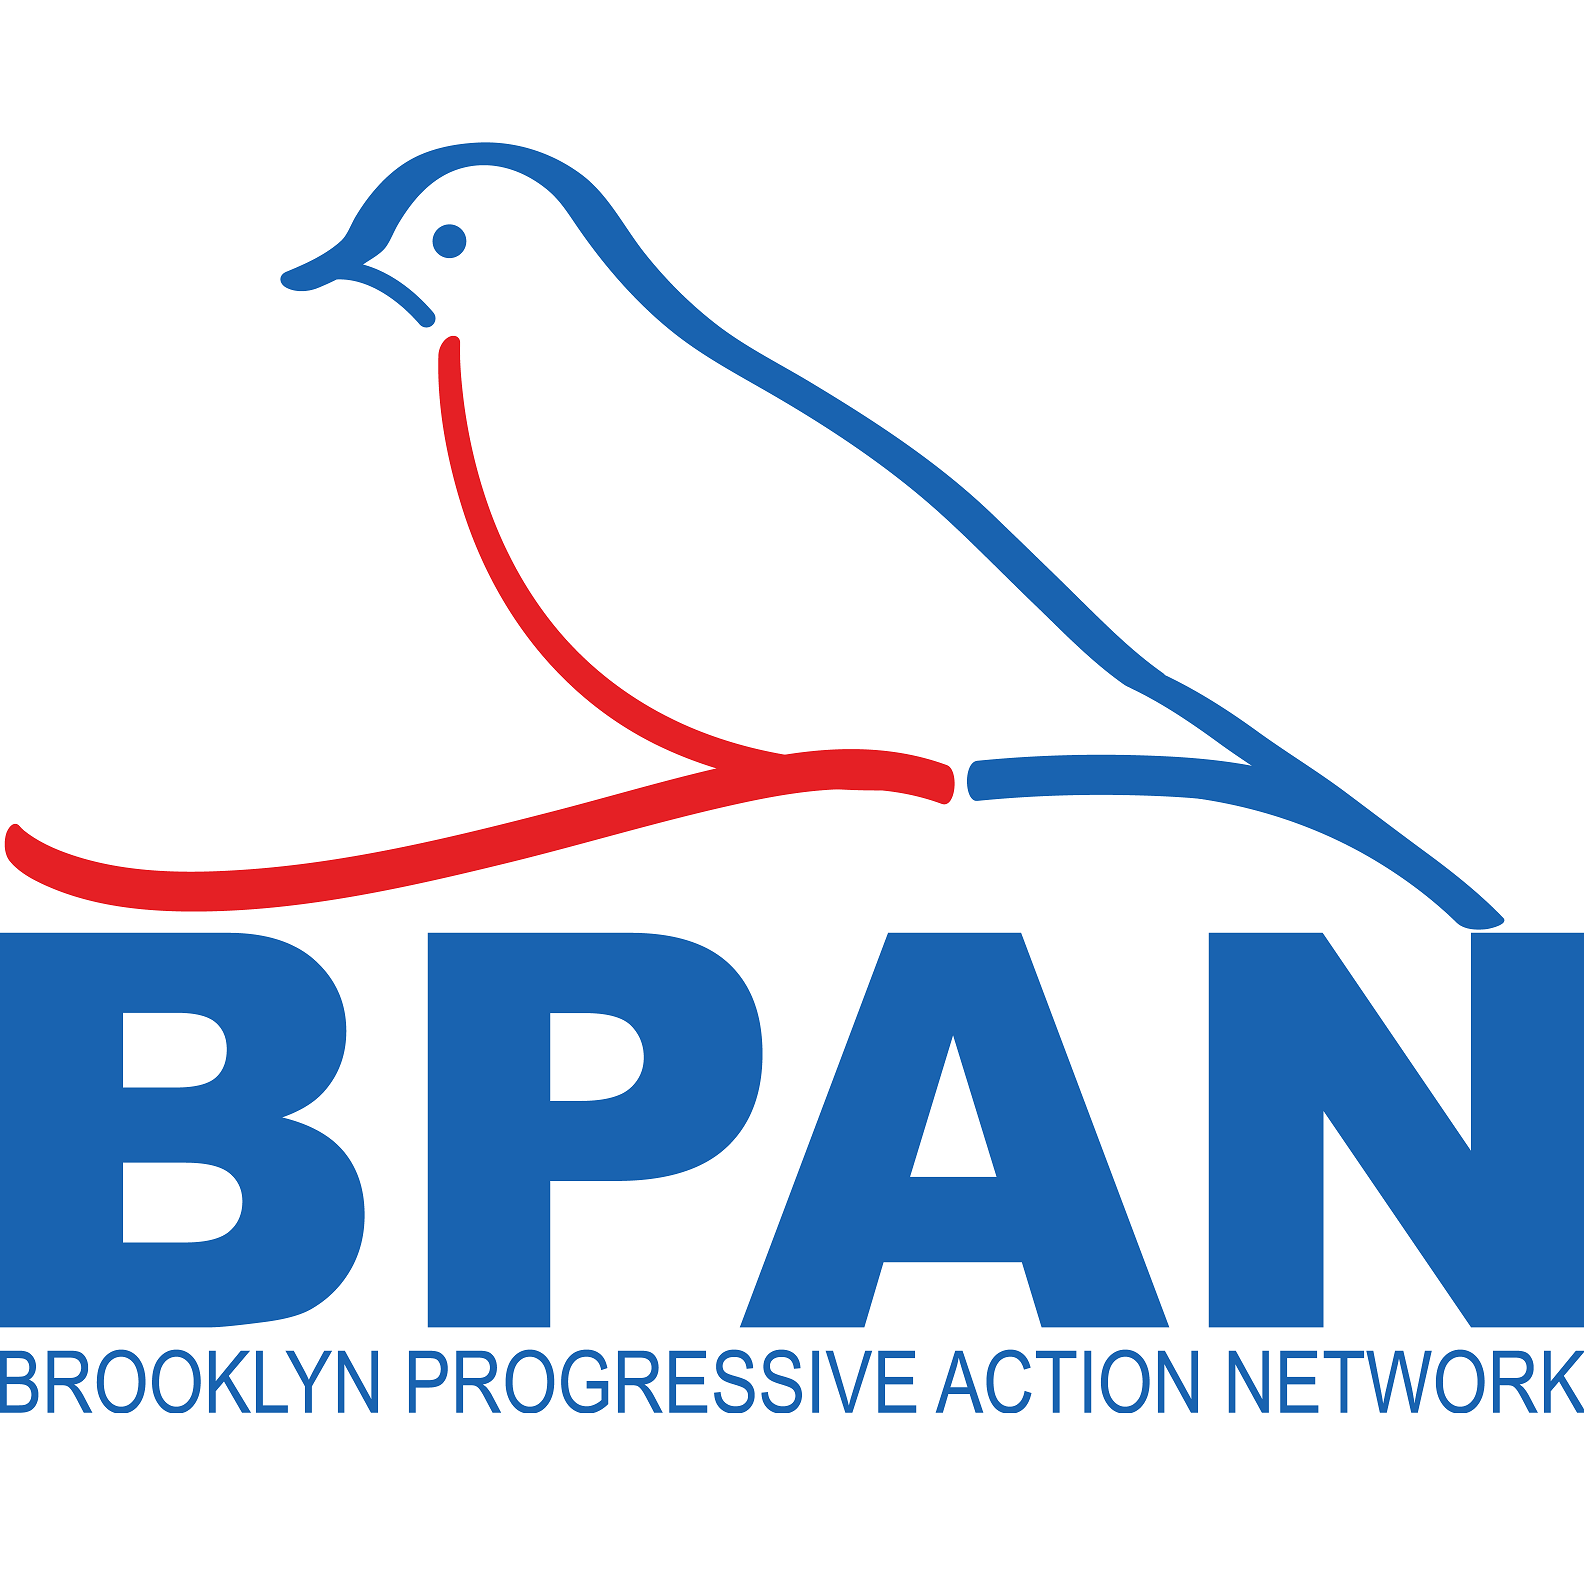 Brooklyn_Progressive_Action_Network.png